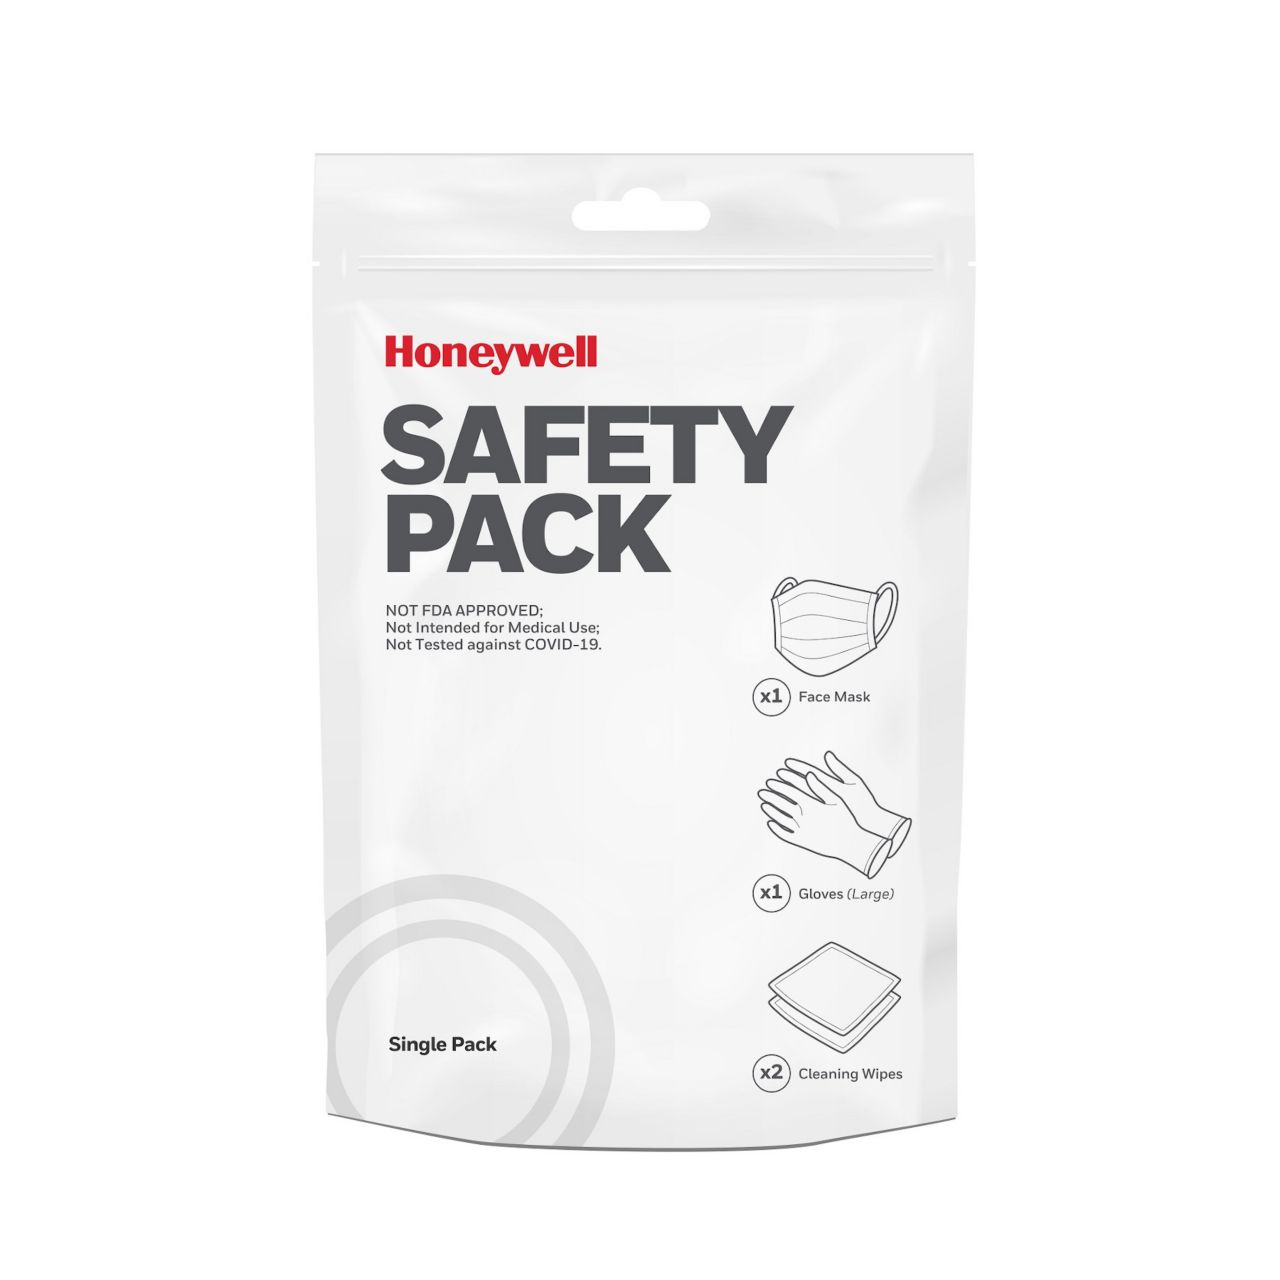 sps-his-safety-pack-promotion